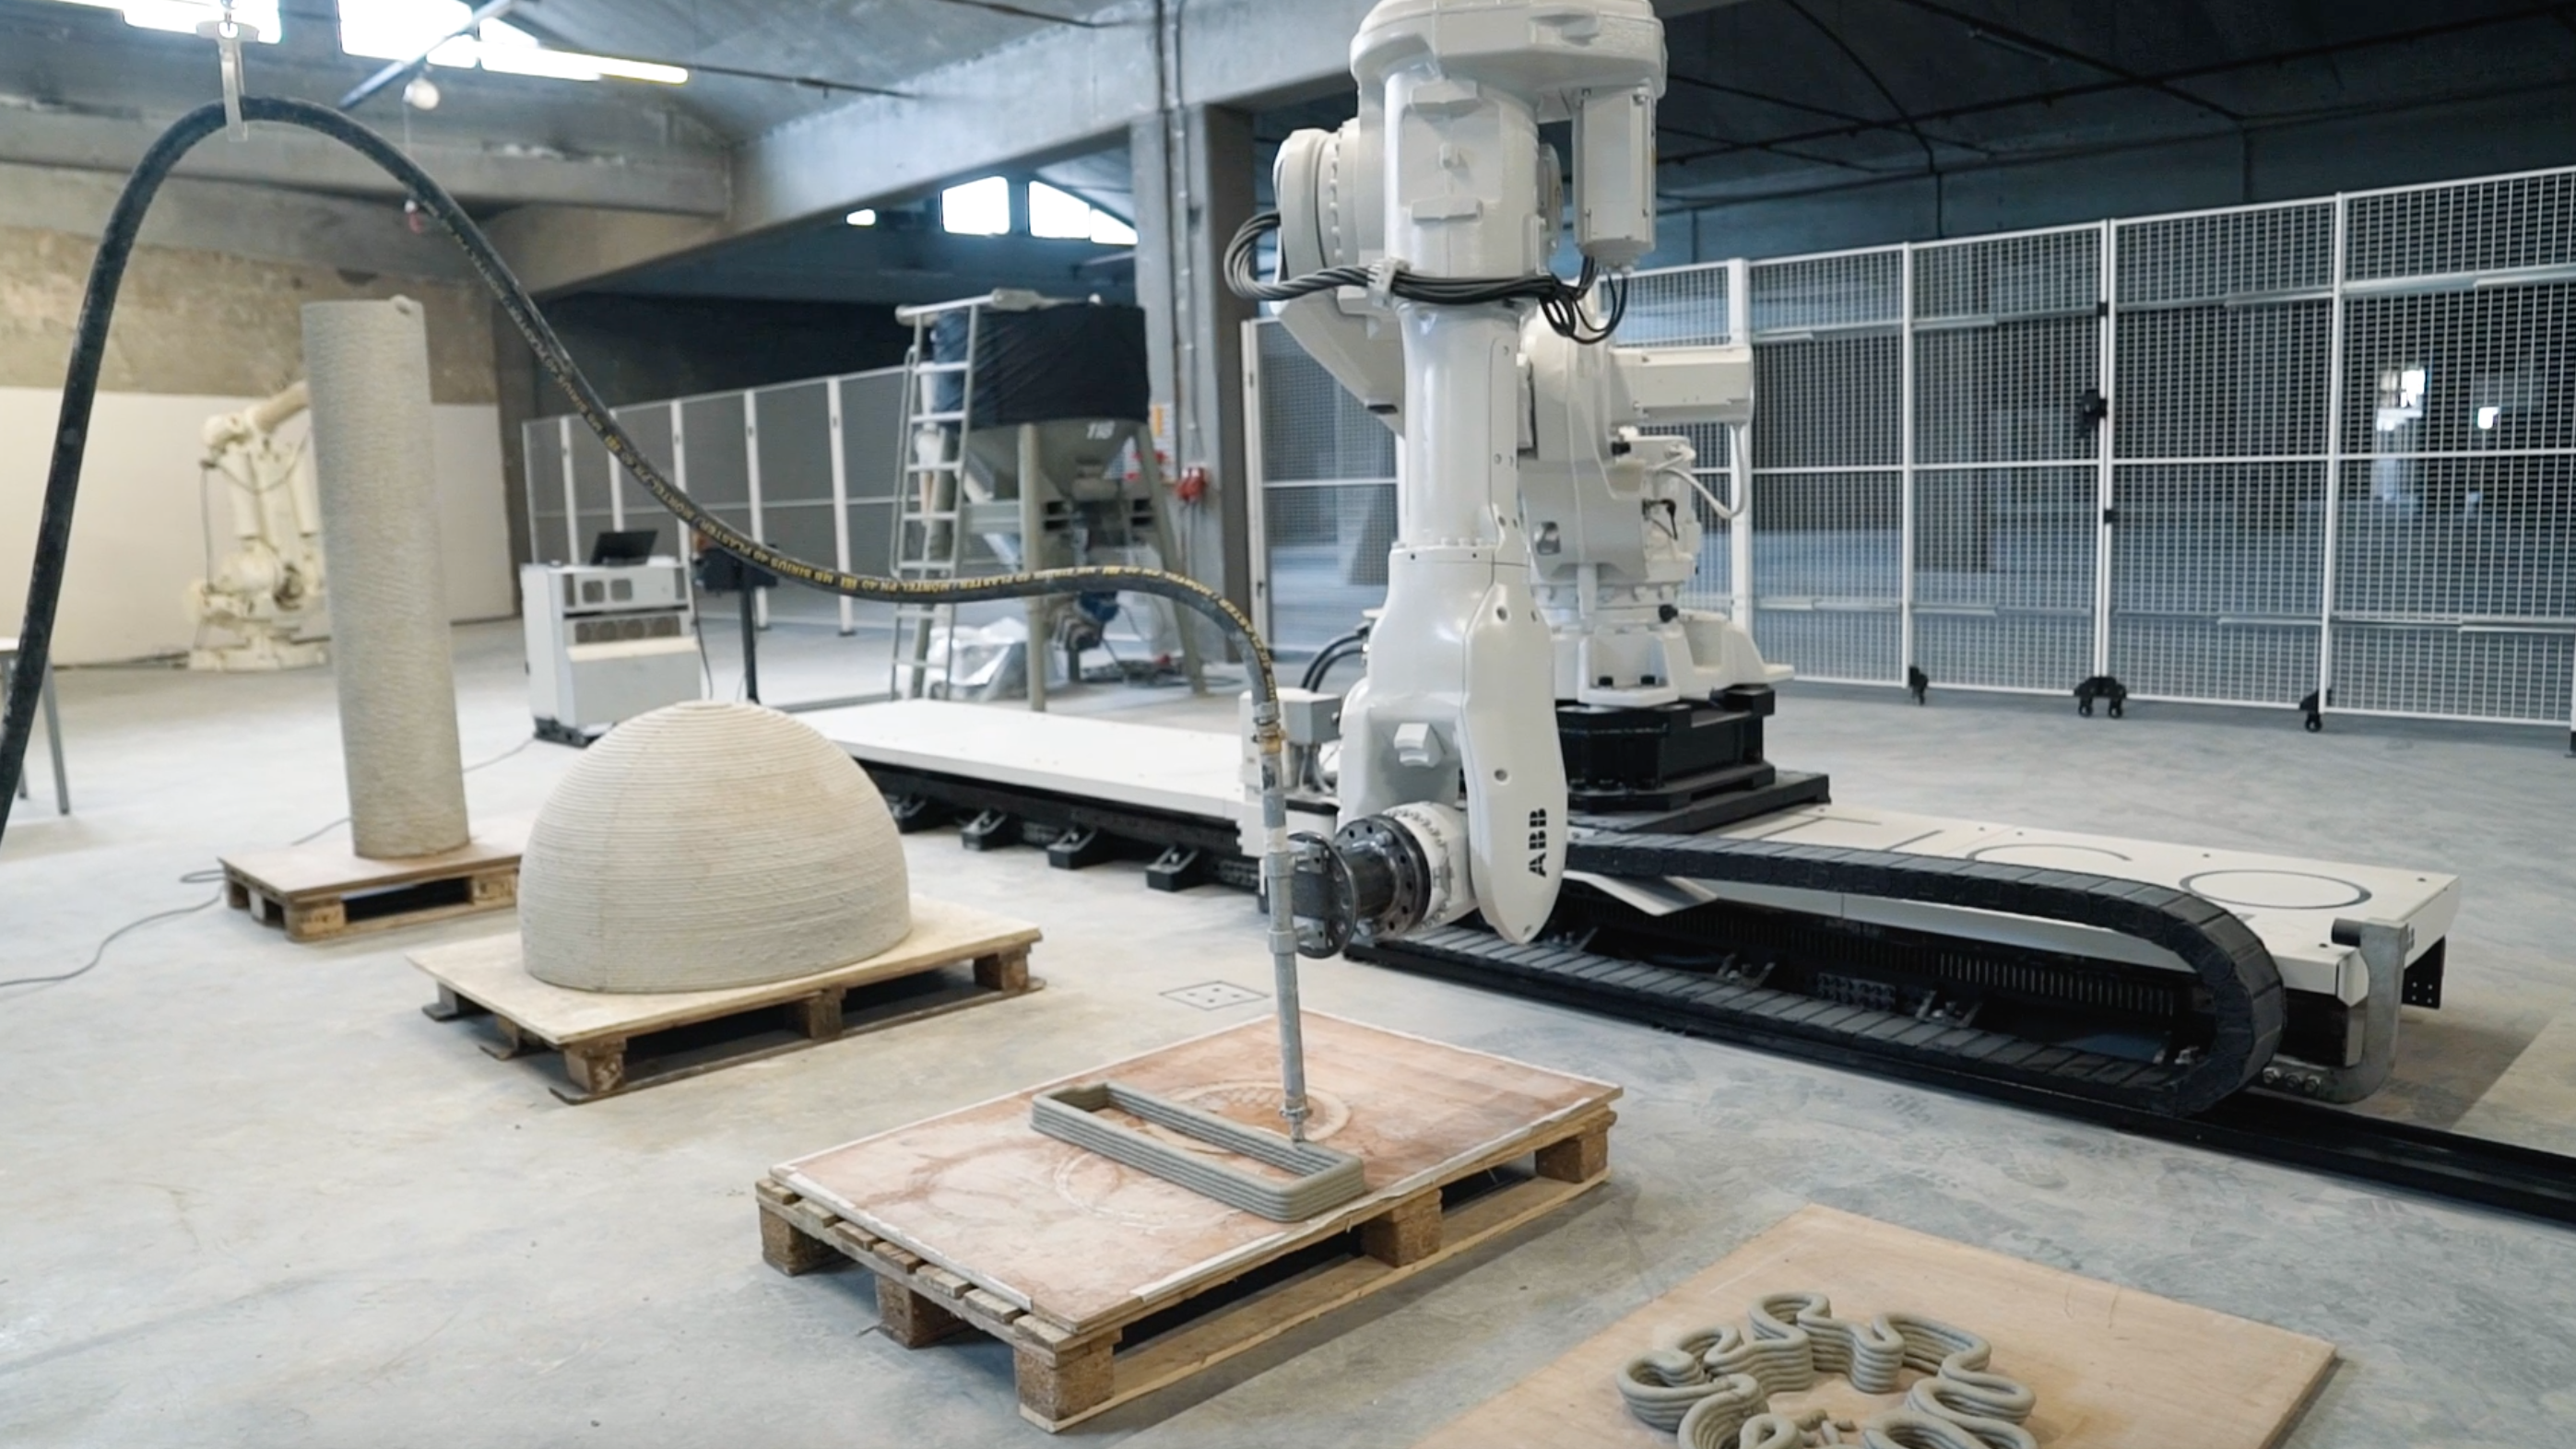 Vertico's specially designed robotic arm operating at the new Eindhoven facility. Image via Vertico.